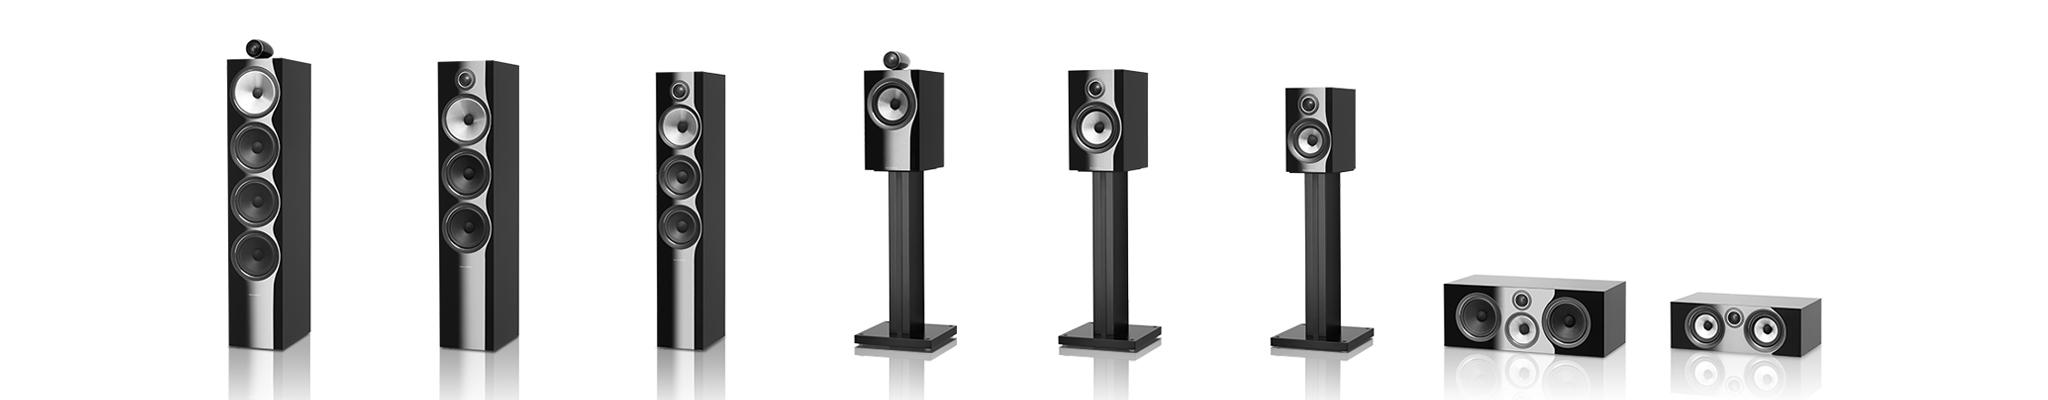 bowers-wilkins-700-series-range